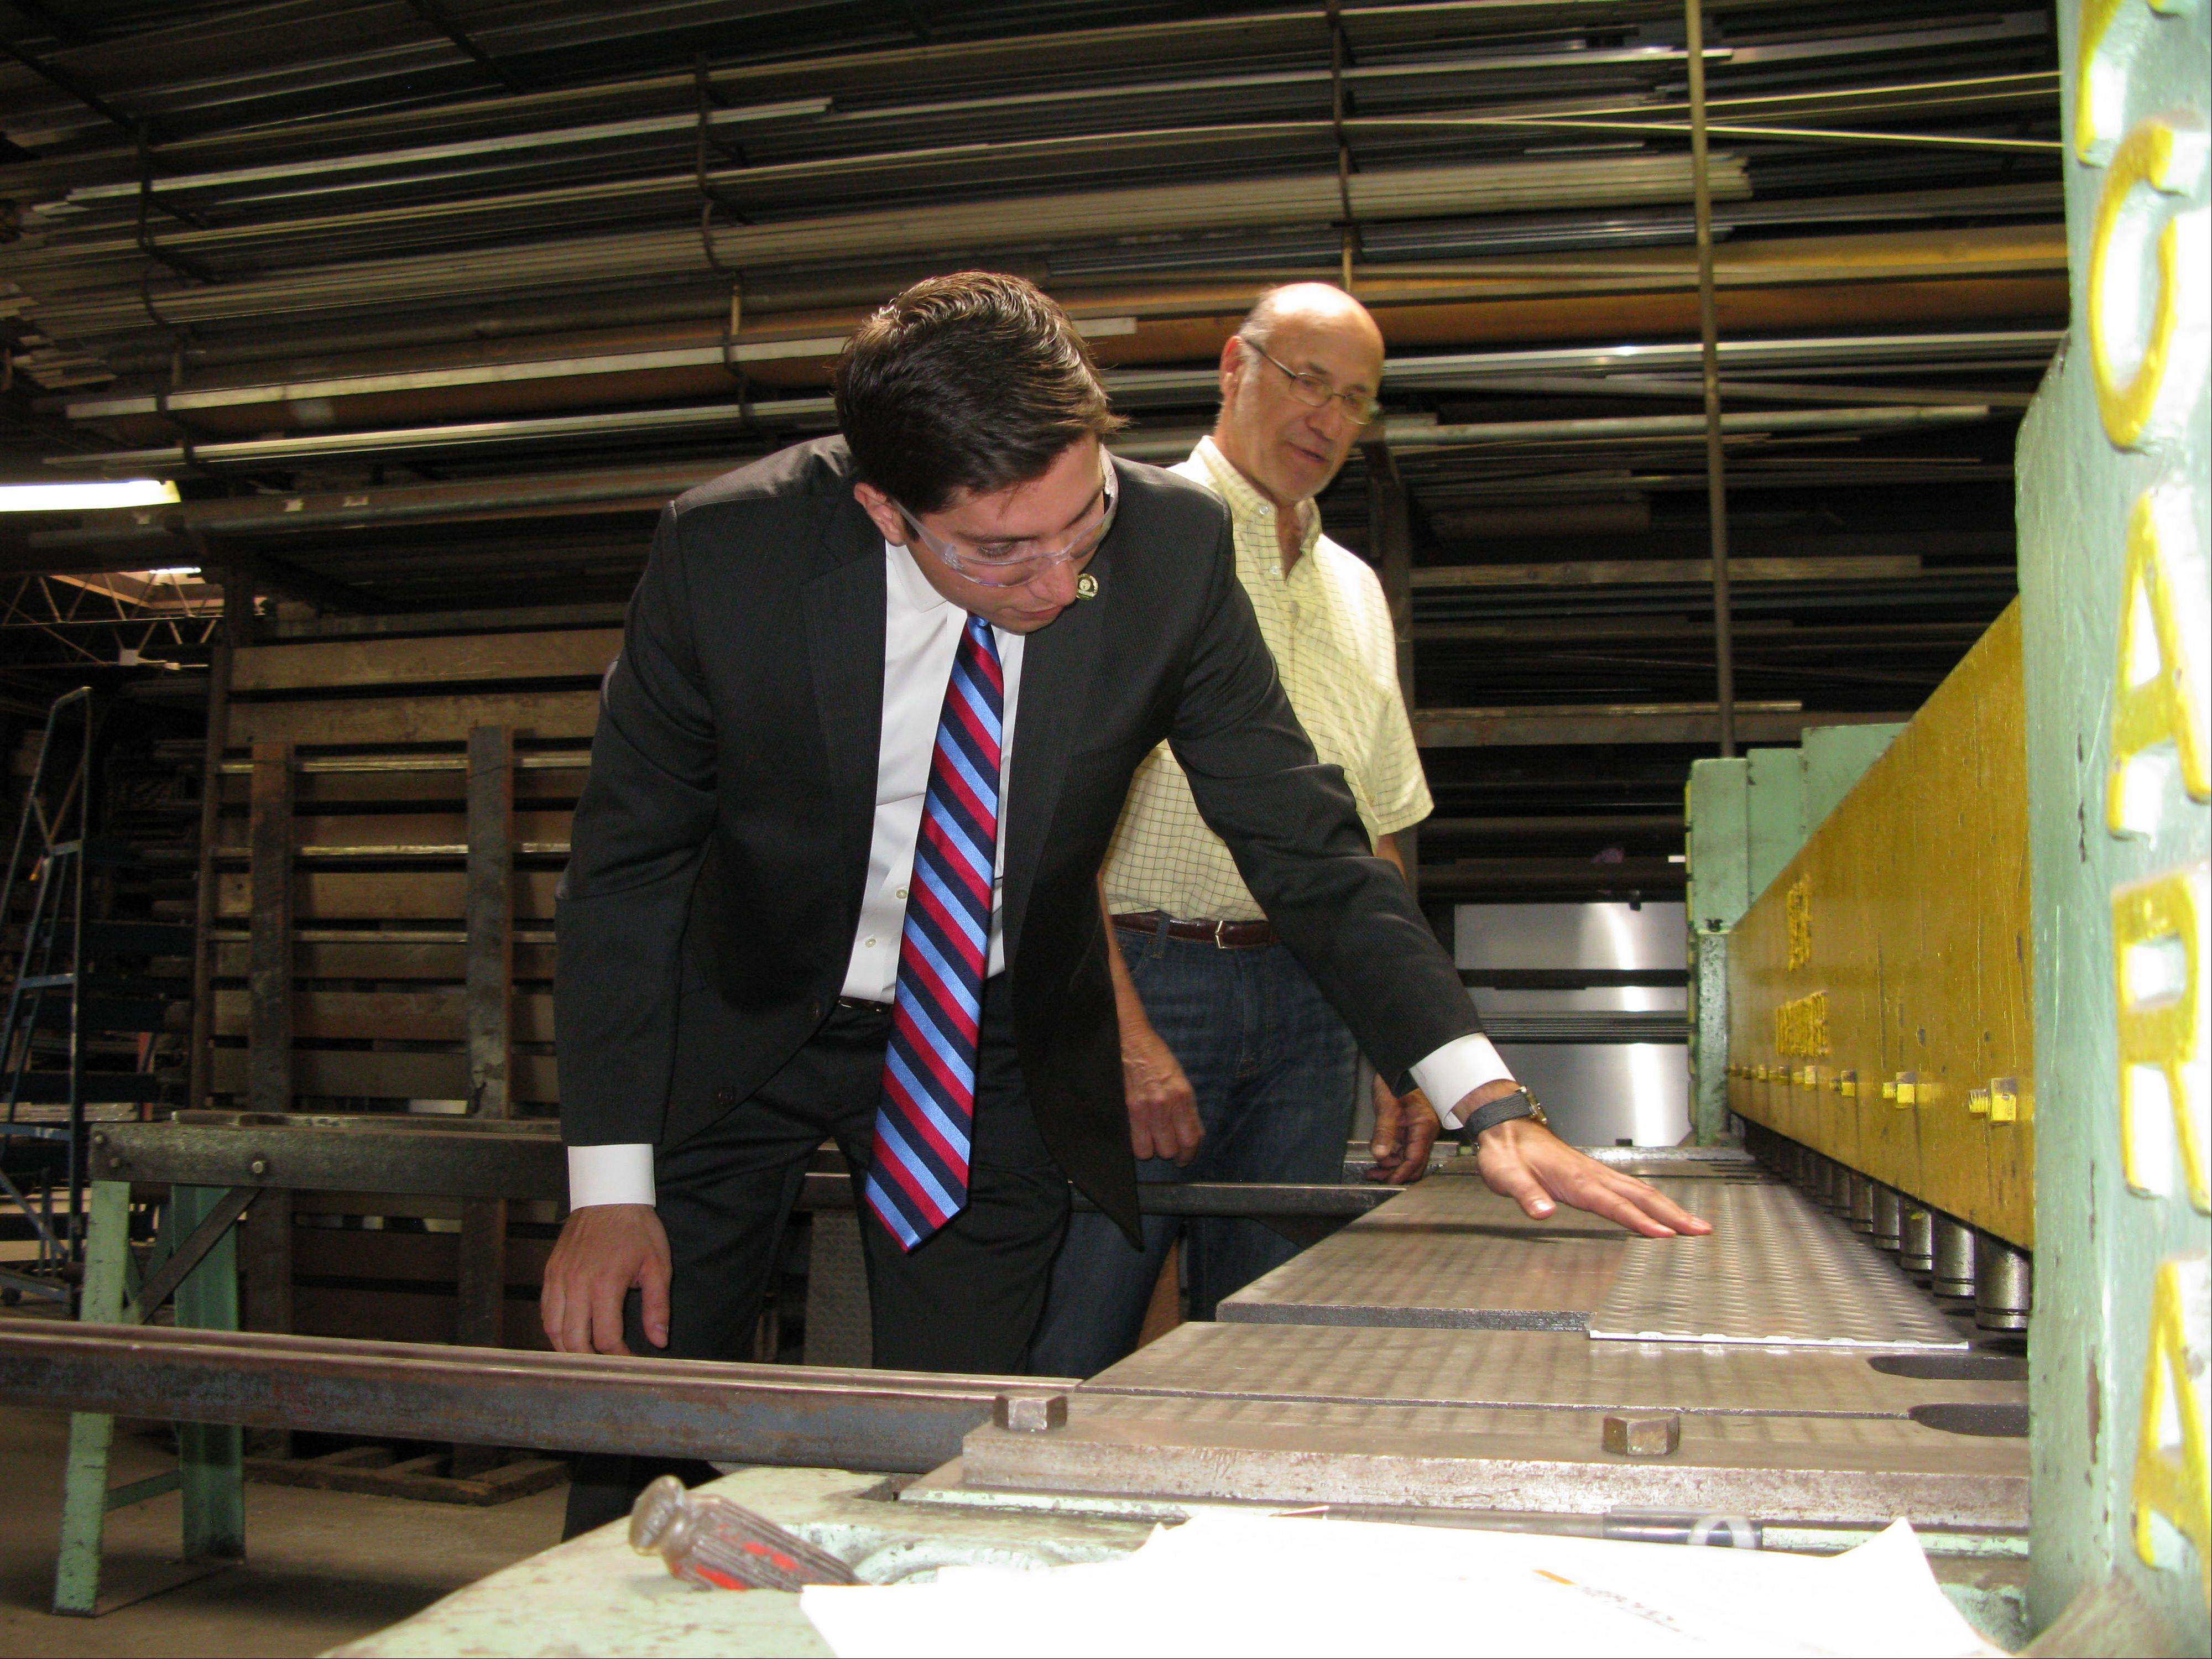 Des Plaines Mayor Matt Bogusz kicks off his first day on the job by touring businesses before heading to Springfield to meet with the city's lobbyists and lawmakers to talk about proposed gambling expansion legislation. Here Bogusz learns how to shear metal.